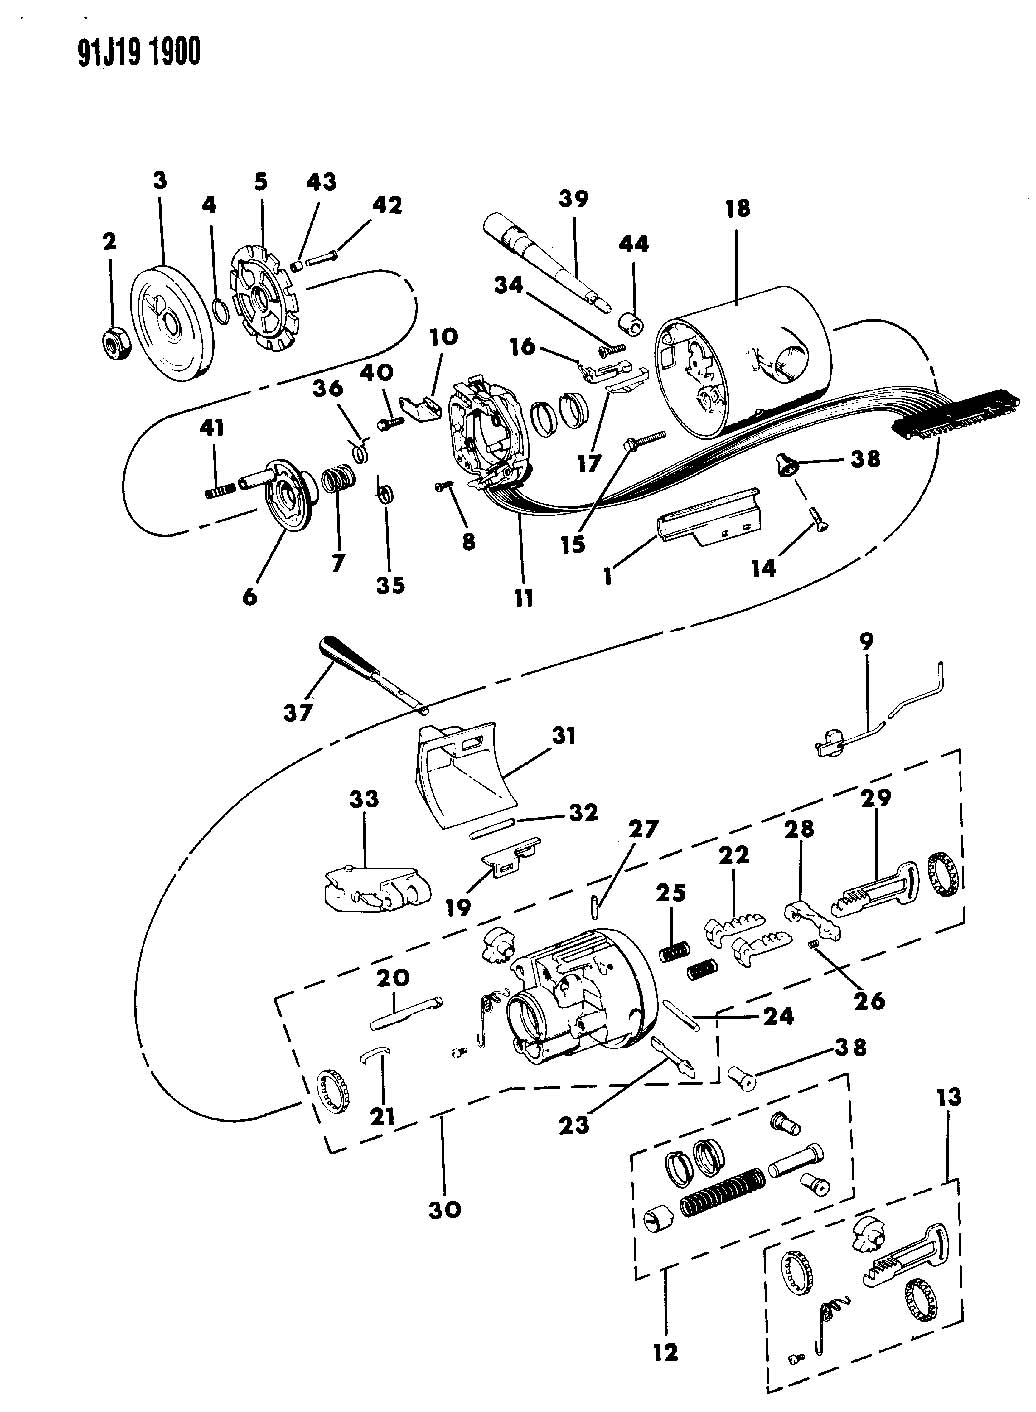 T13754557 2006 aveo master fusible link cuts off additionally festiva fuse box diagram furthermore jeep wrangler